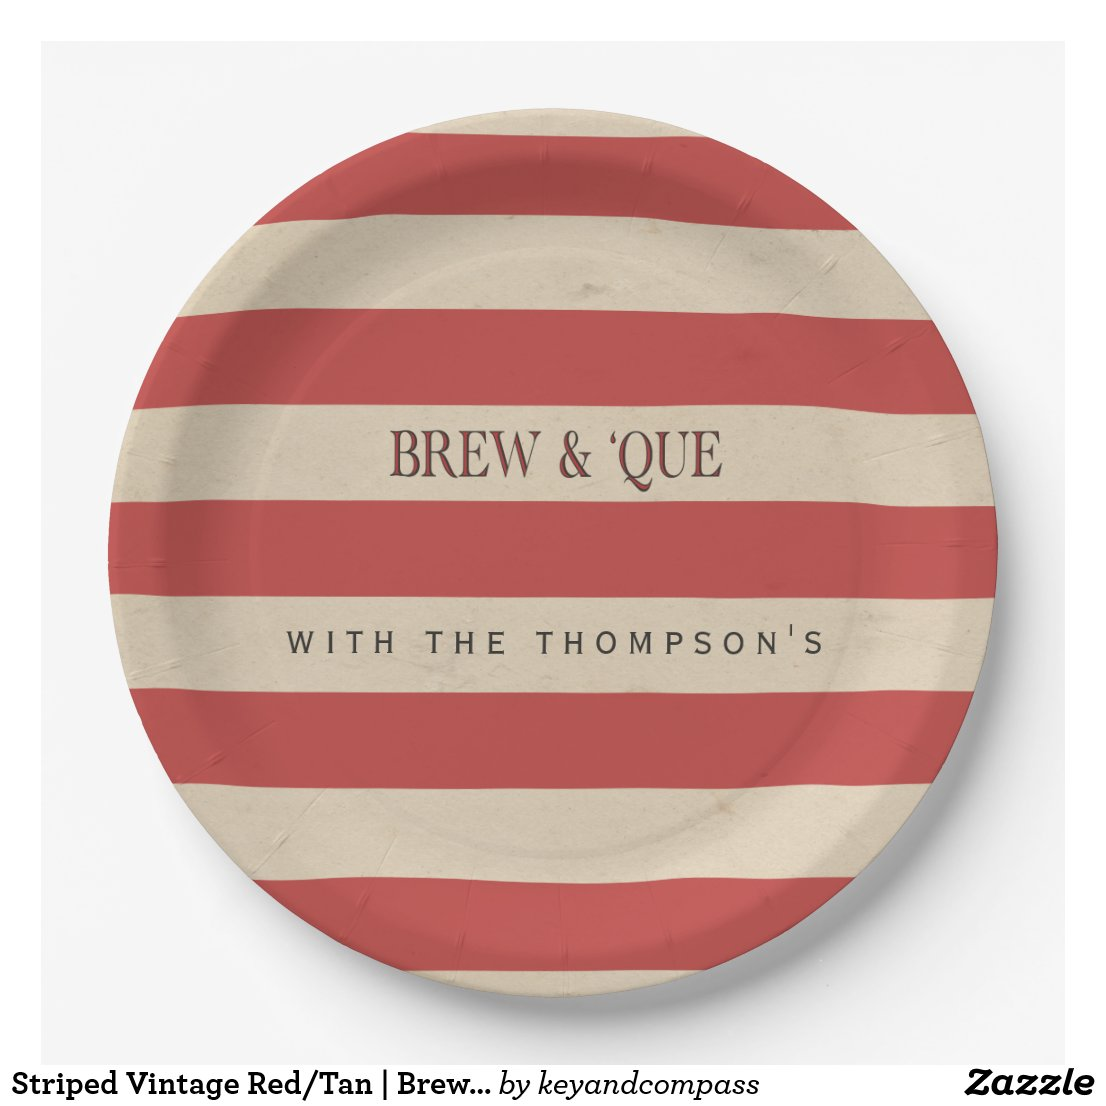 Striped Vintage Red/Tan | Brew & 'Que Personalized